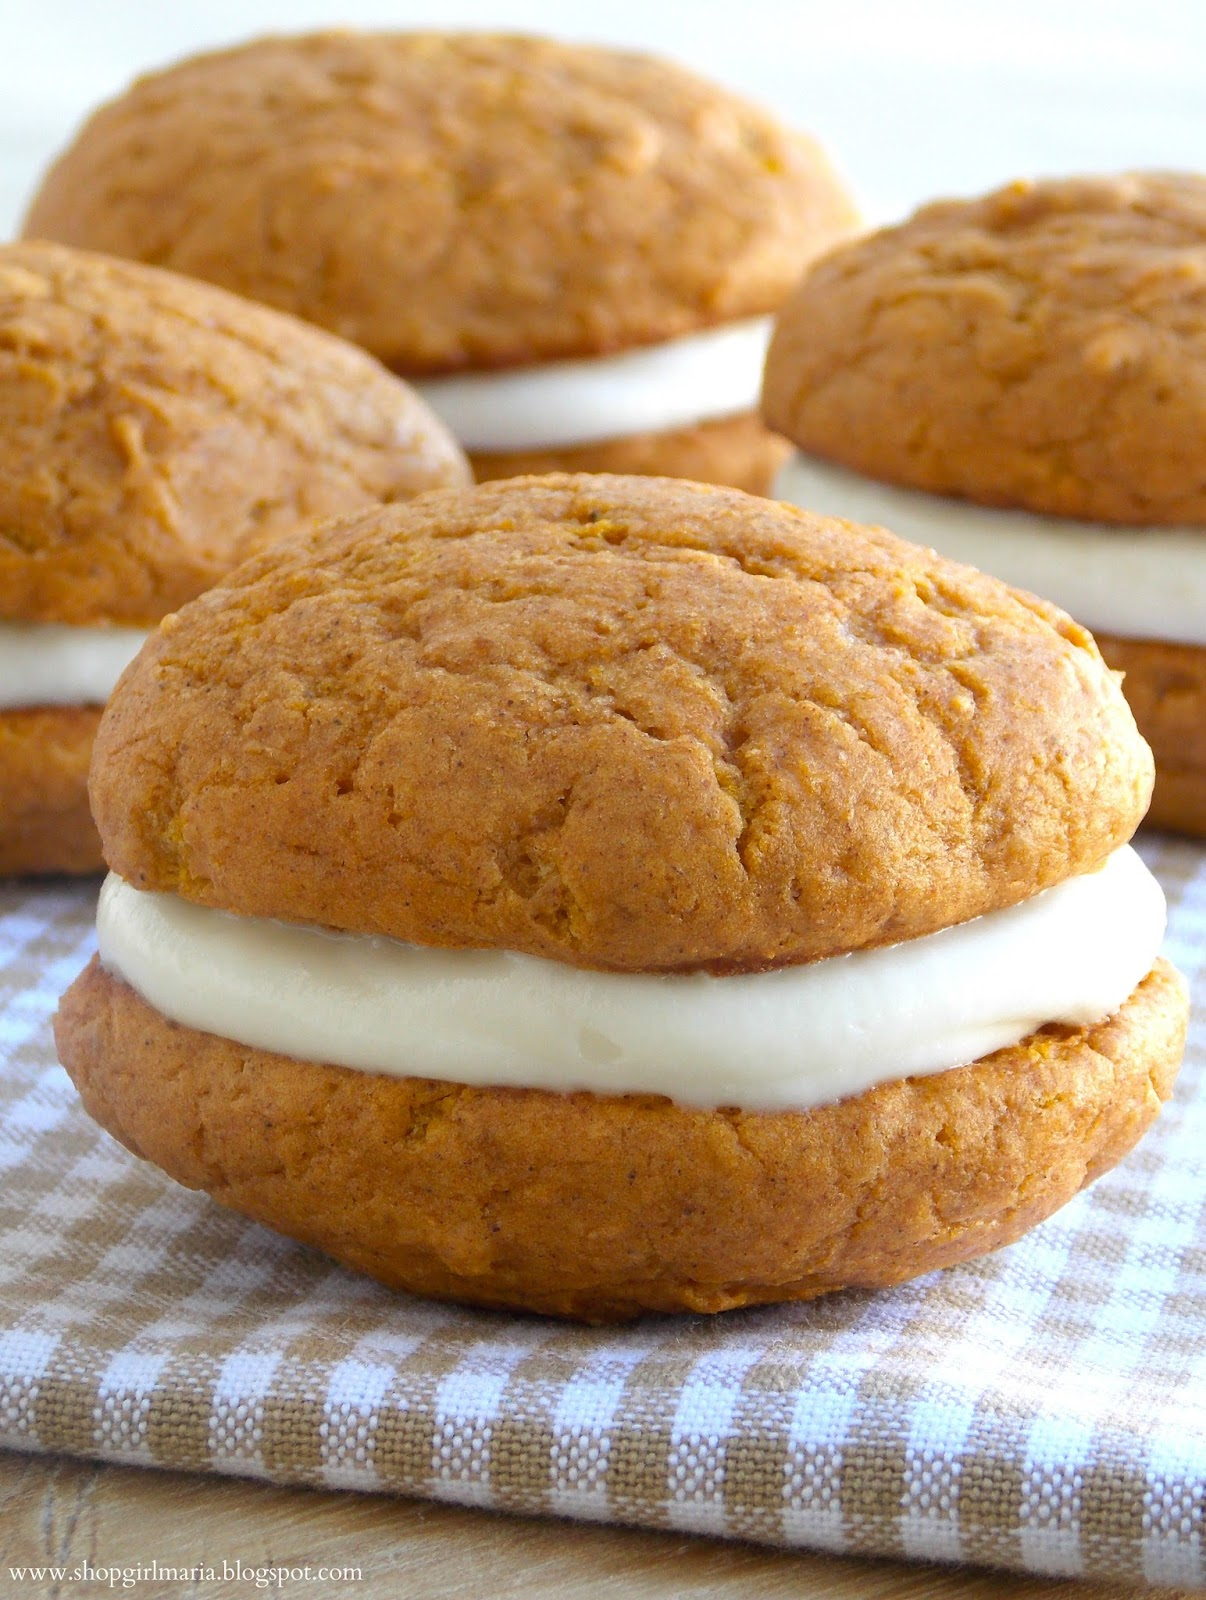 Shopgirl: Pumpkin Spice Whoopie Pies with Cream Cheese Filling